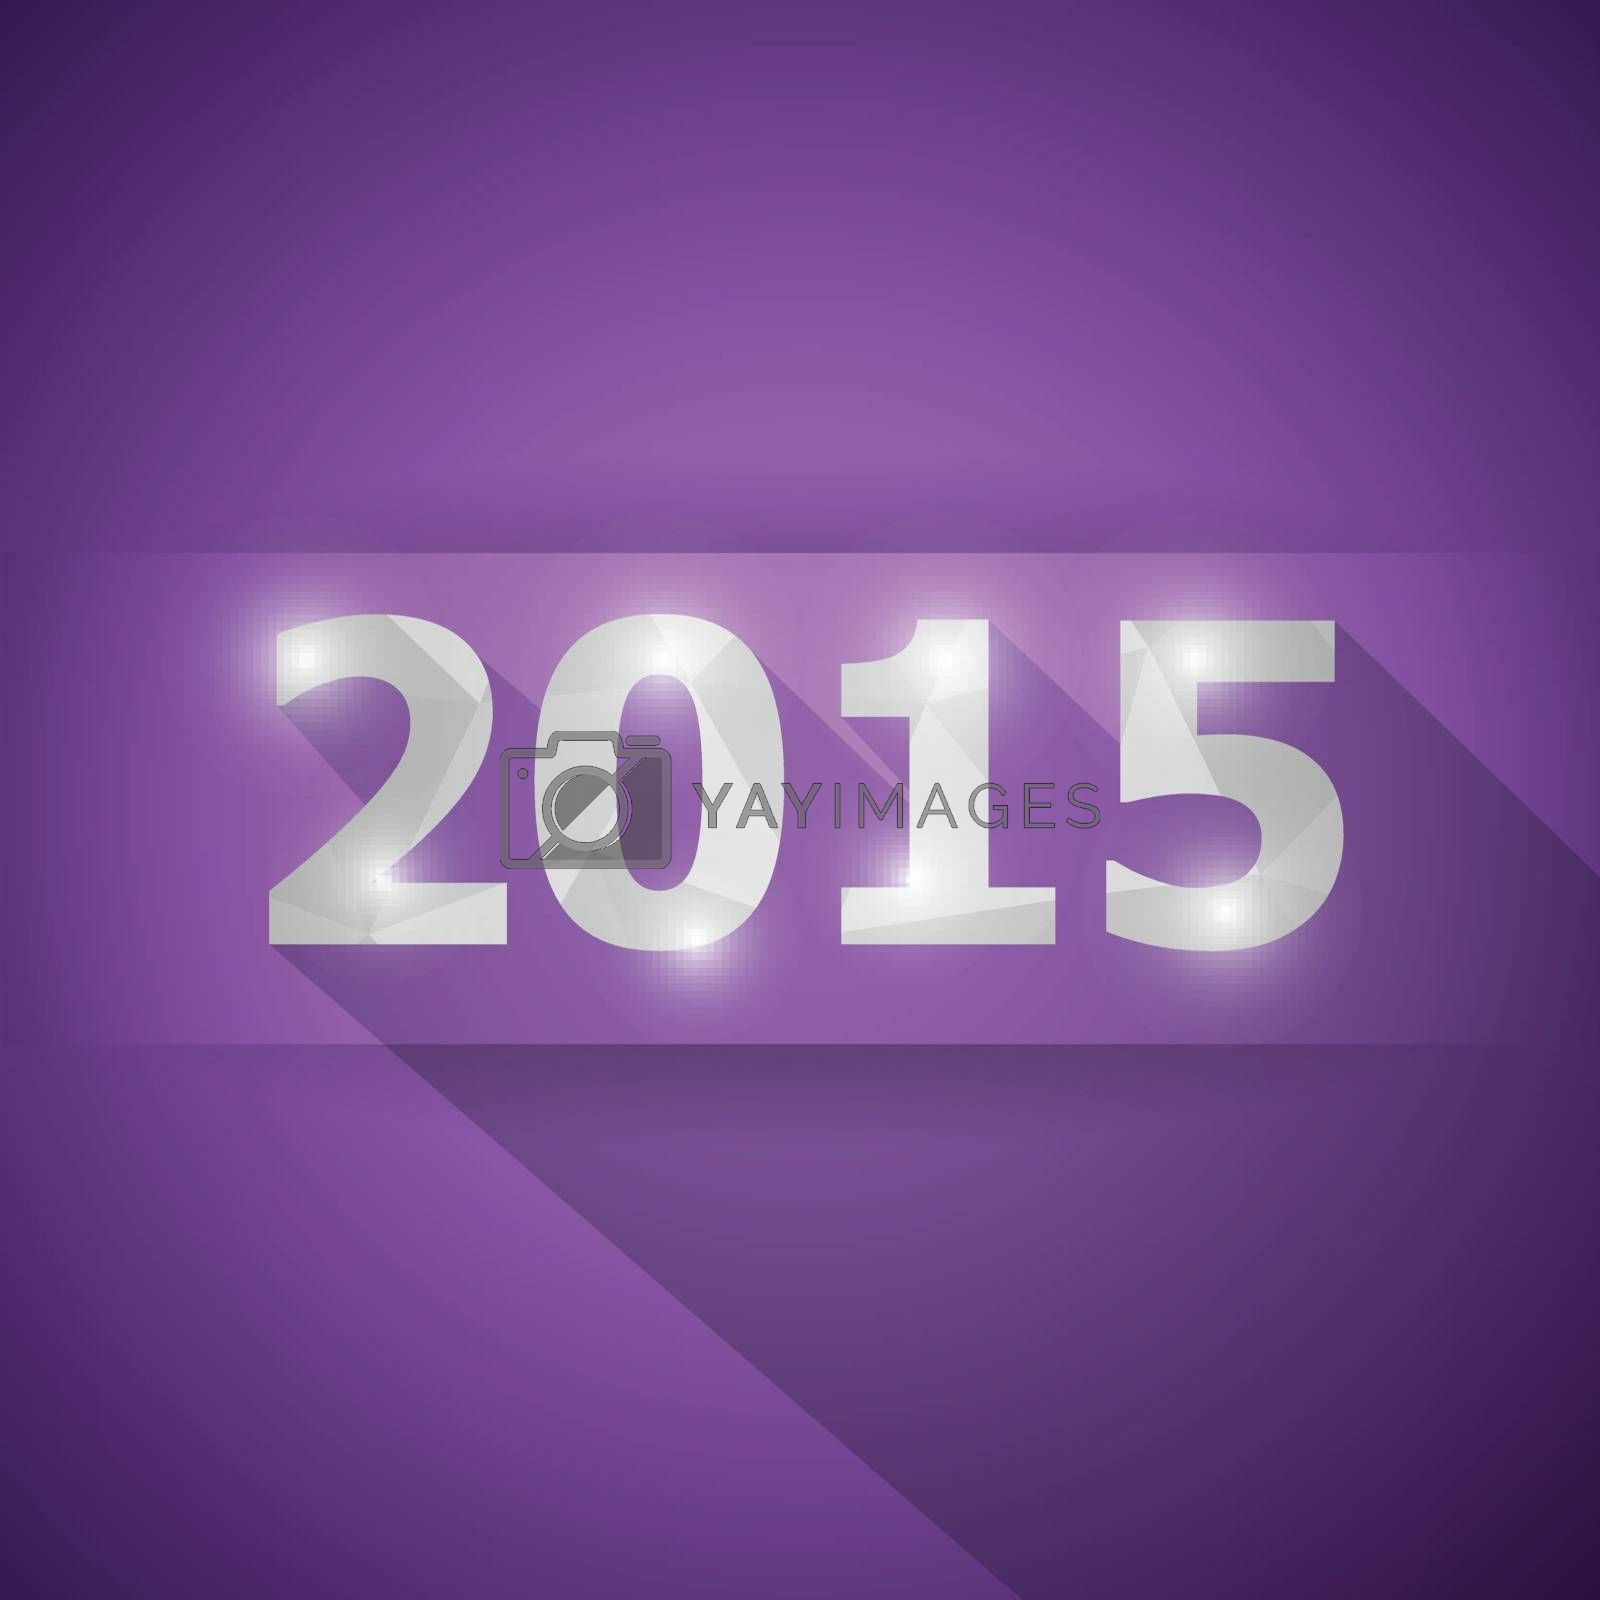 2015 with abstract triangle violet background, stock vector